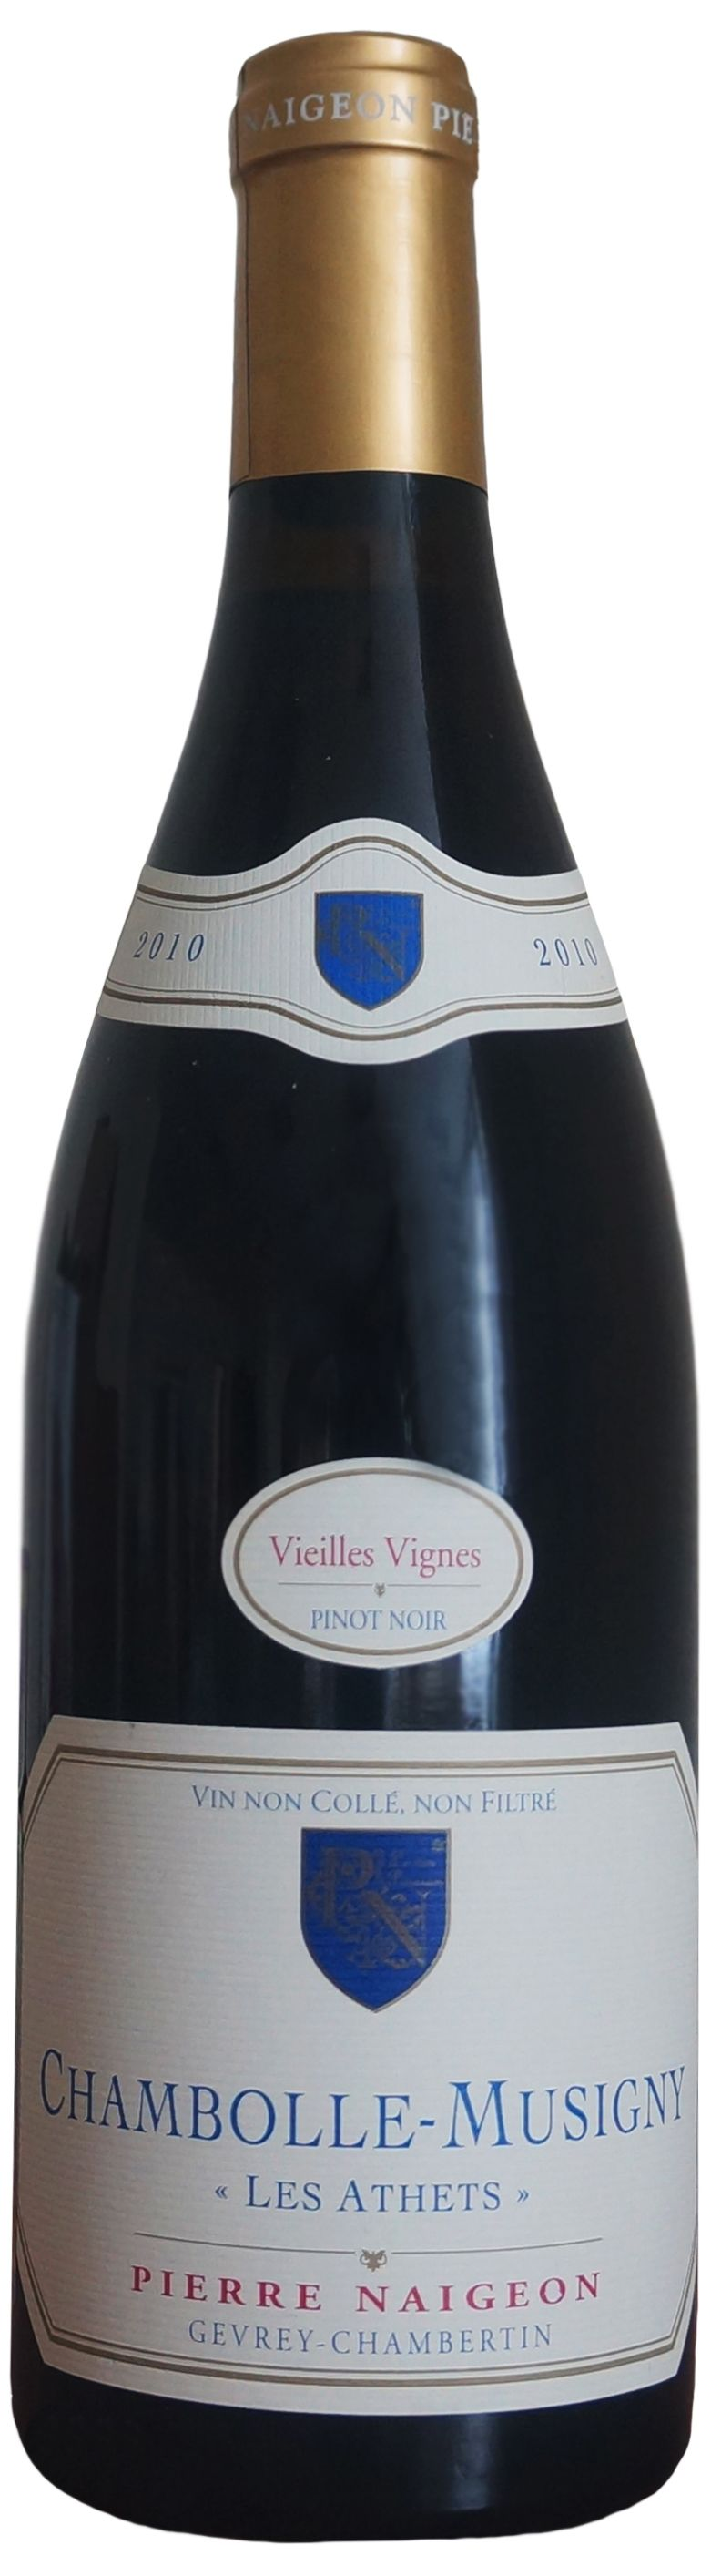 Pierre Naigeon, Chambolle-Musigny Les Athets Vieilles Vignes, 2010